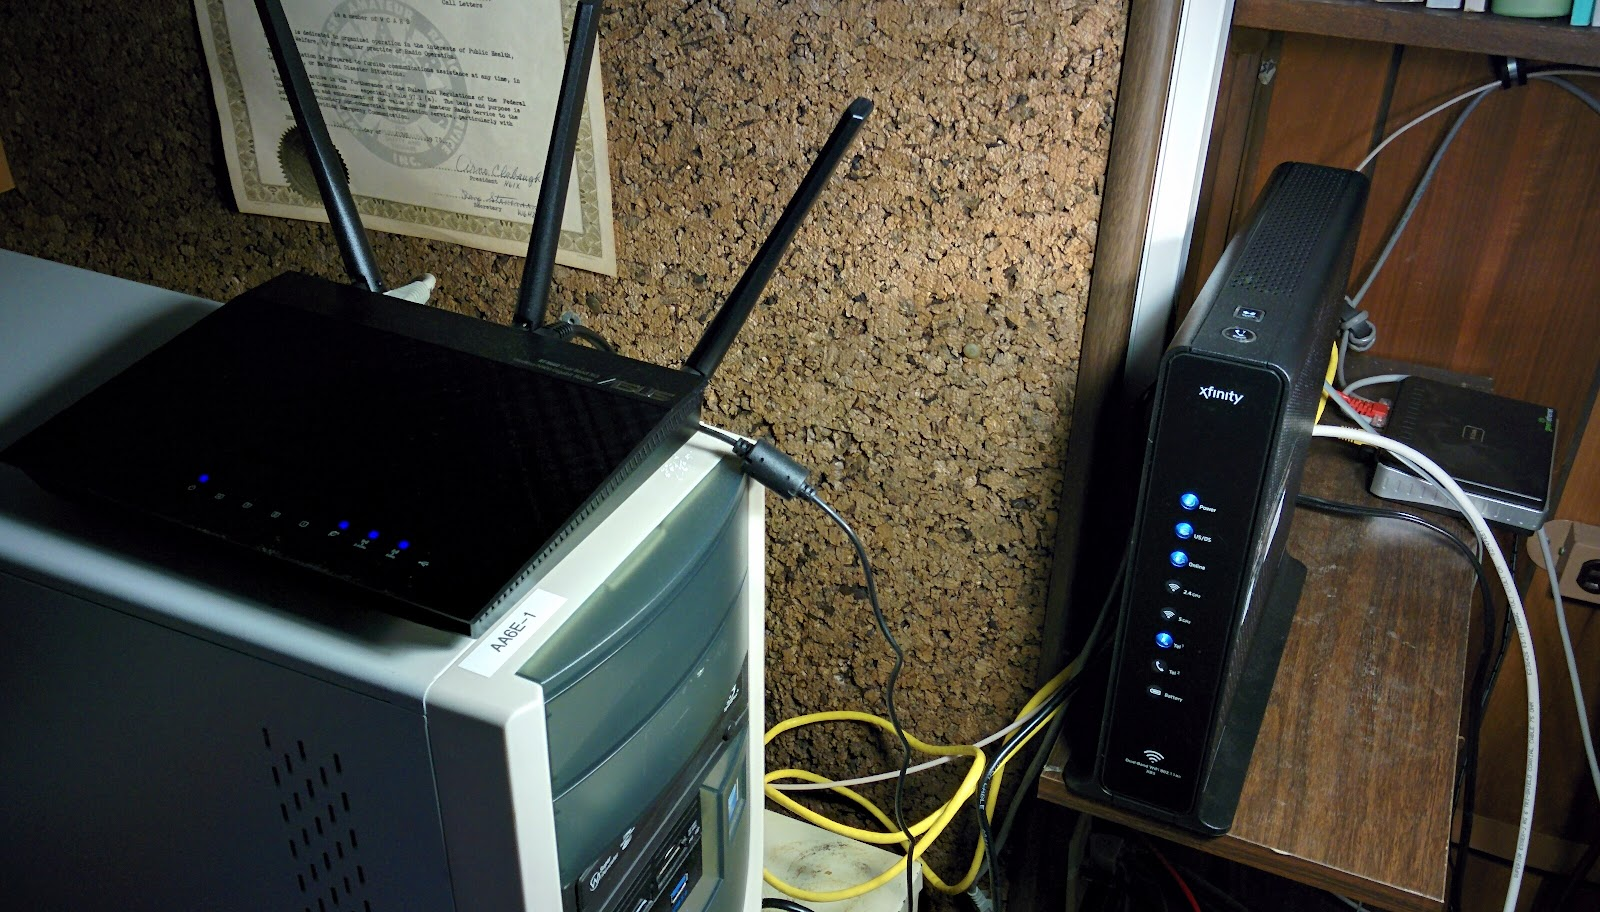 AA6E Station Log: More Network Fun: Asus, HP, and Xfinity